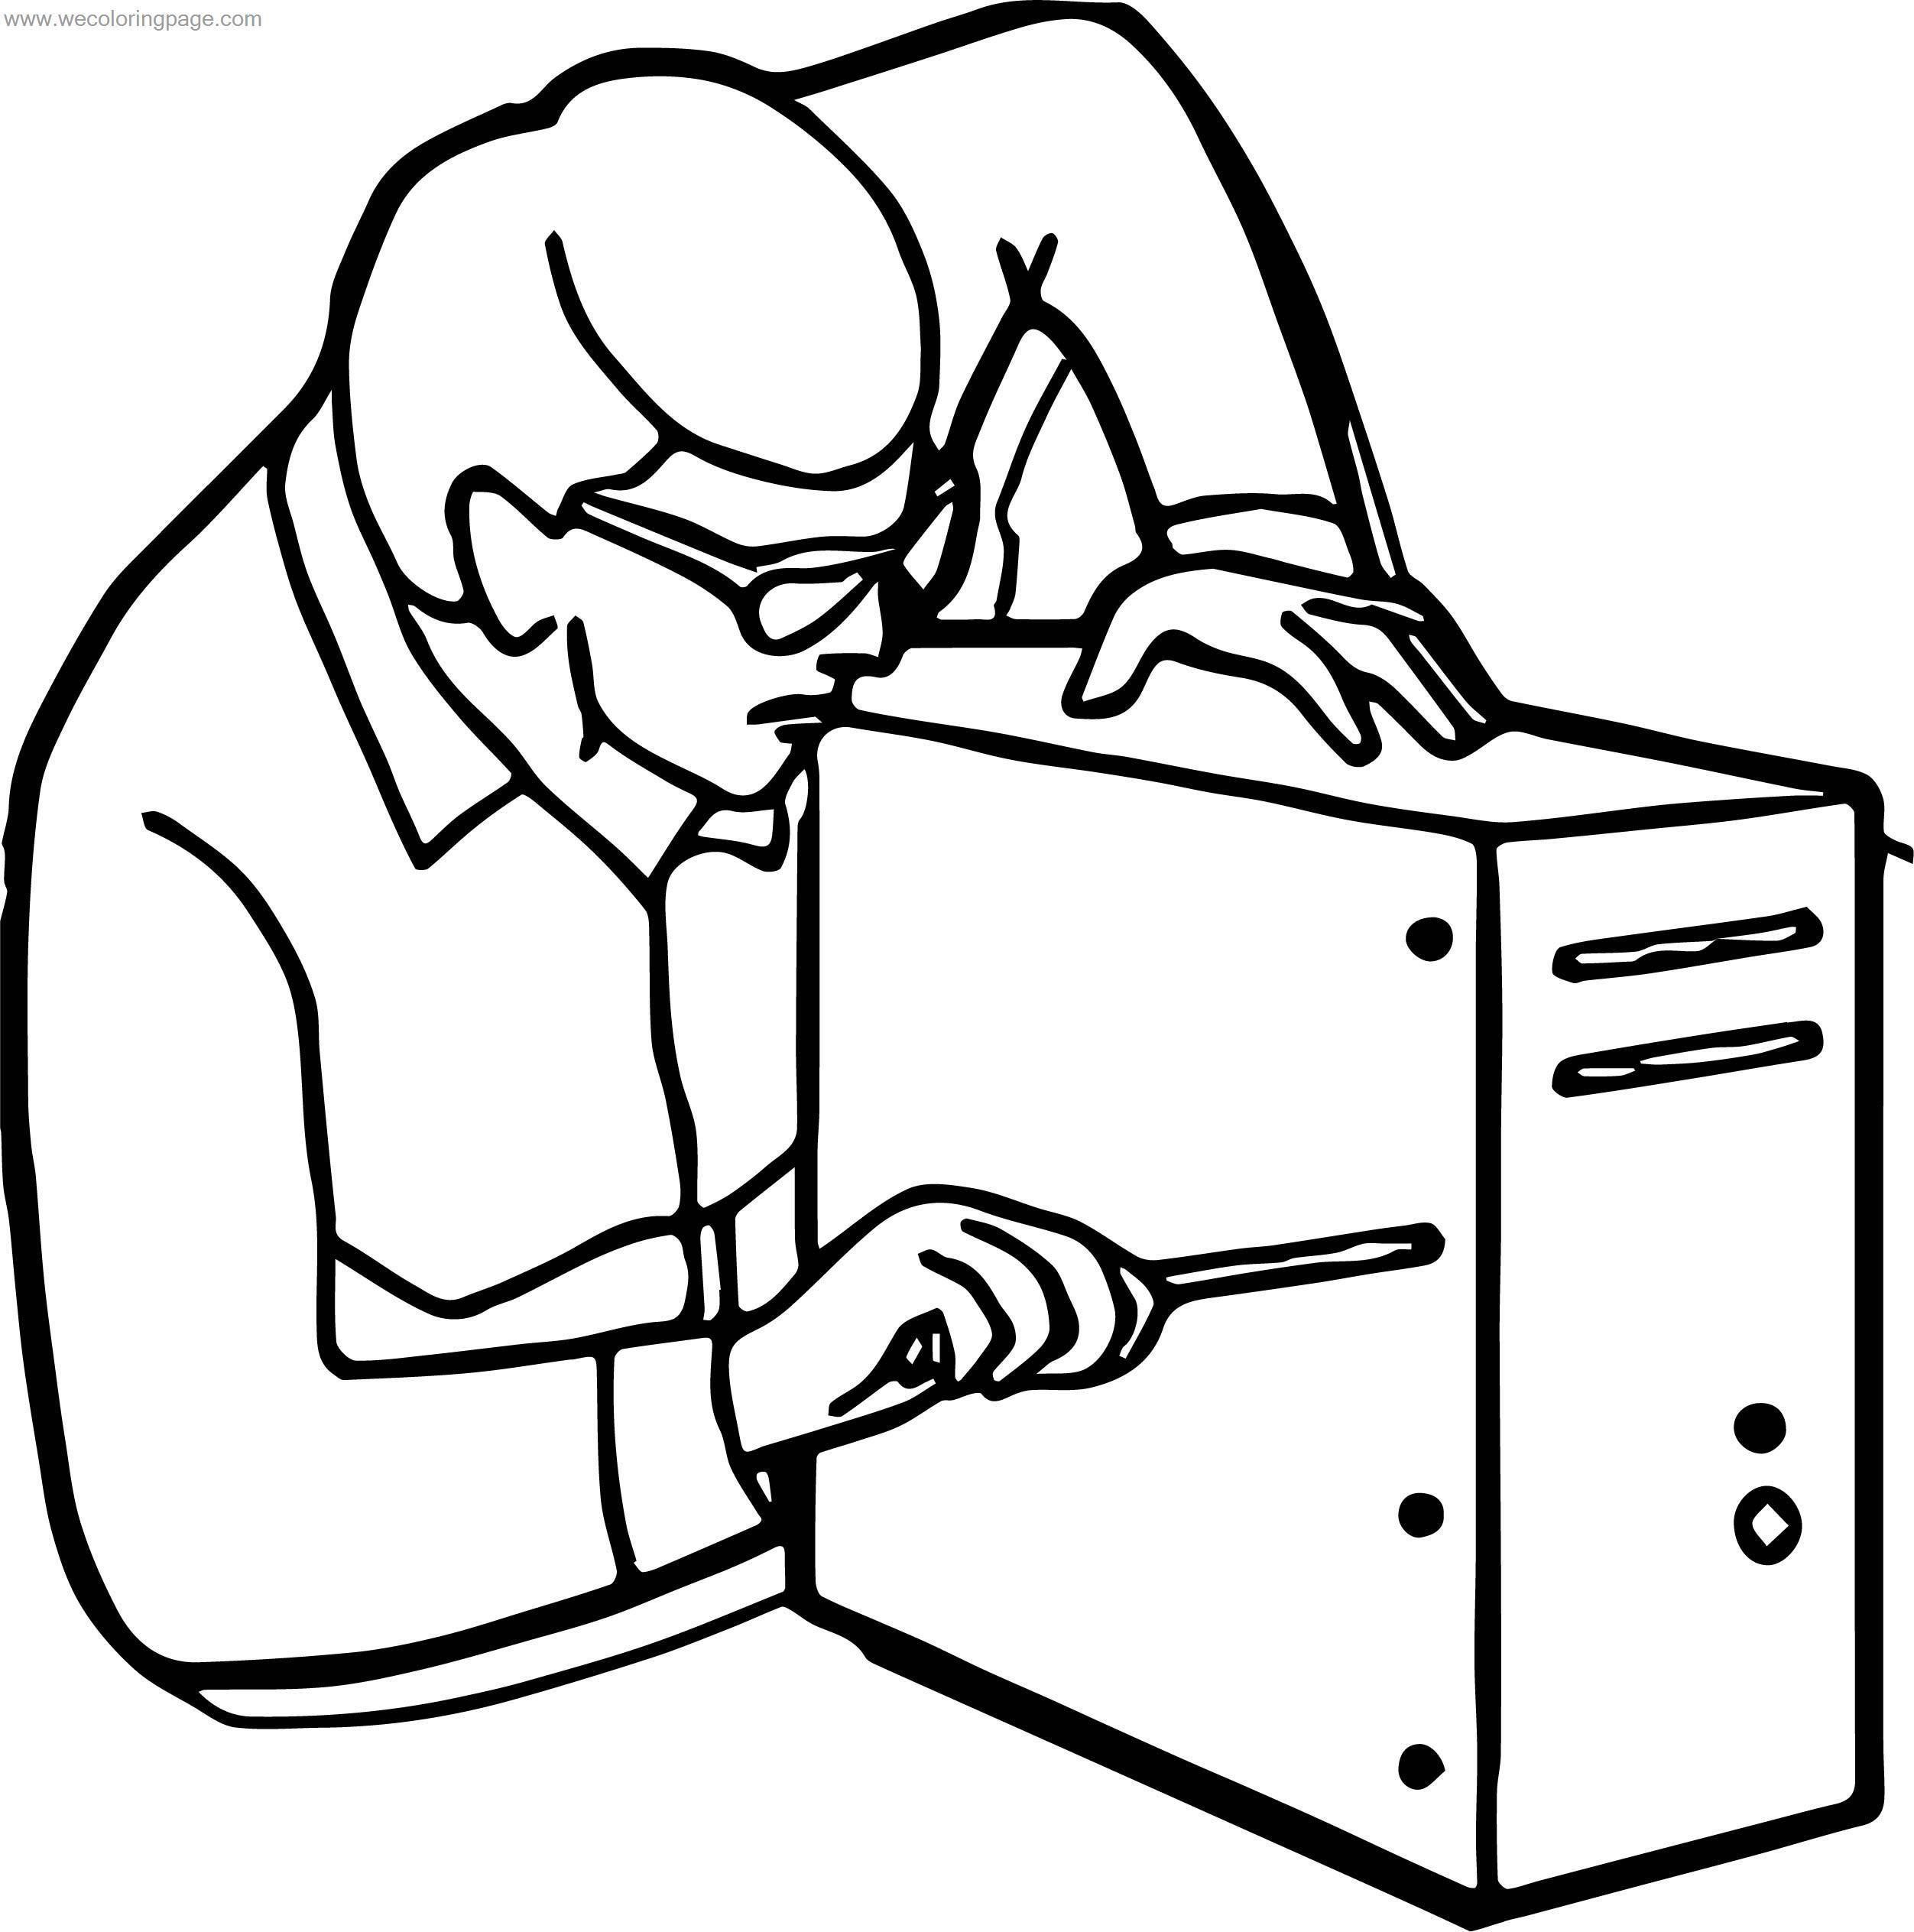 Furnace Repair Man Page Coloring Pages